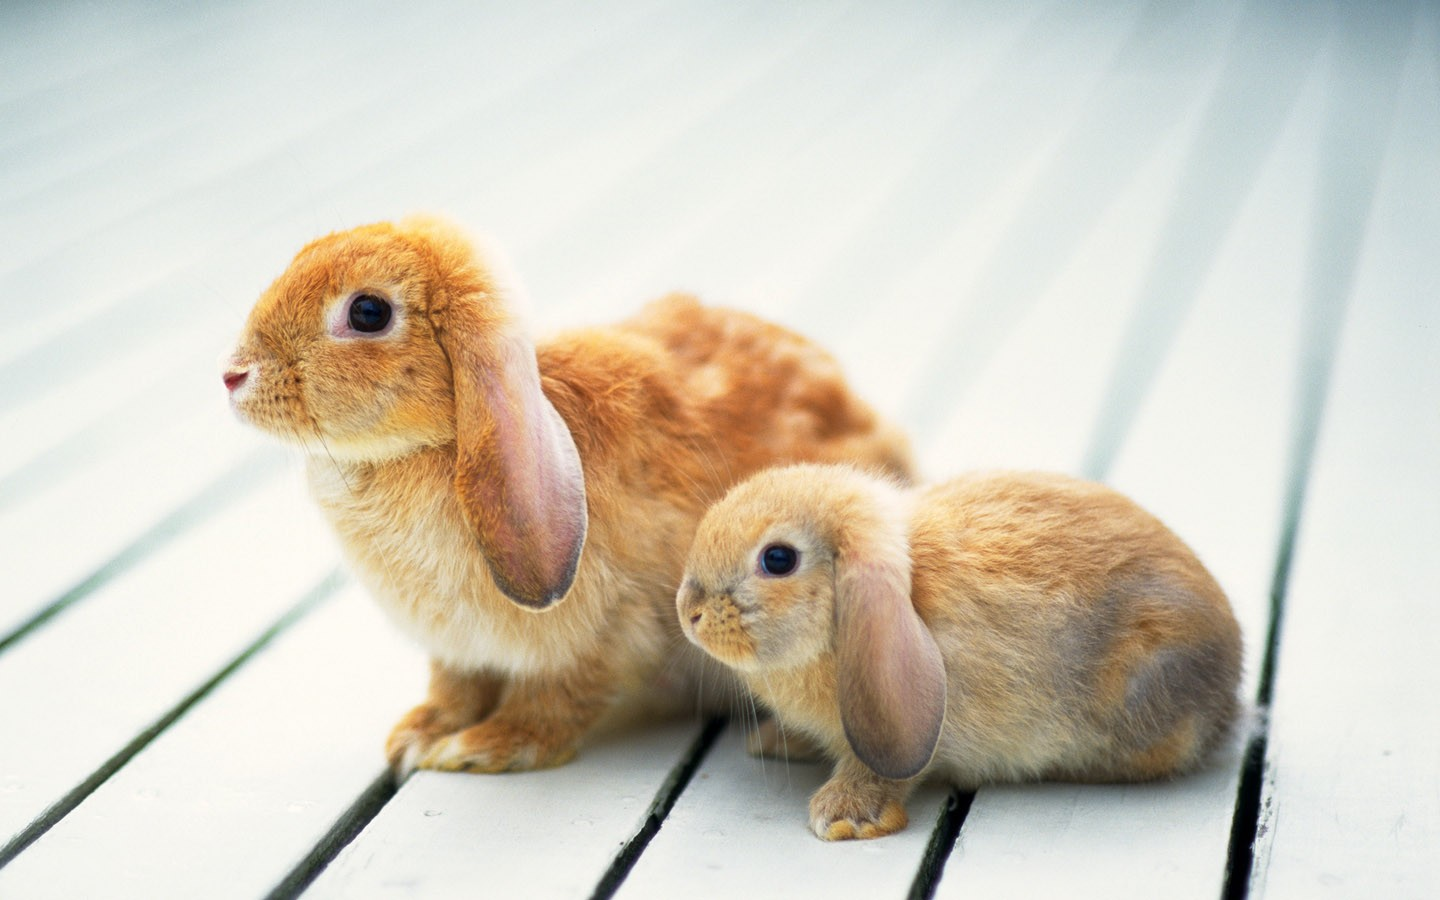 cute and funny pictures of animals 13. bunny.